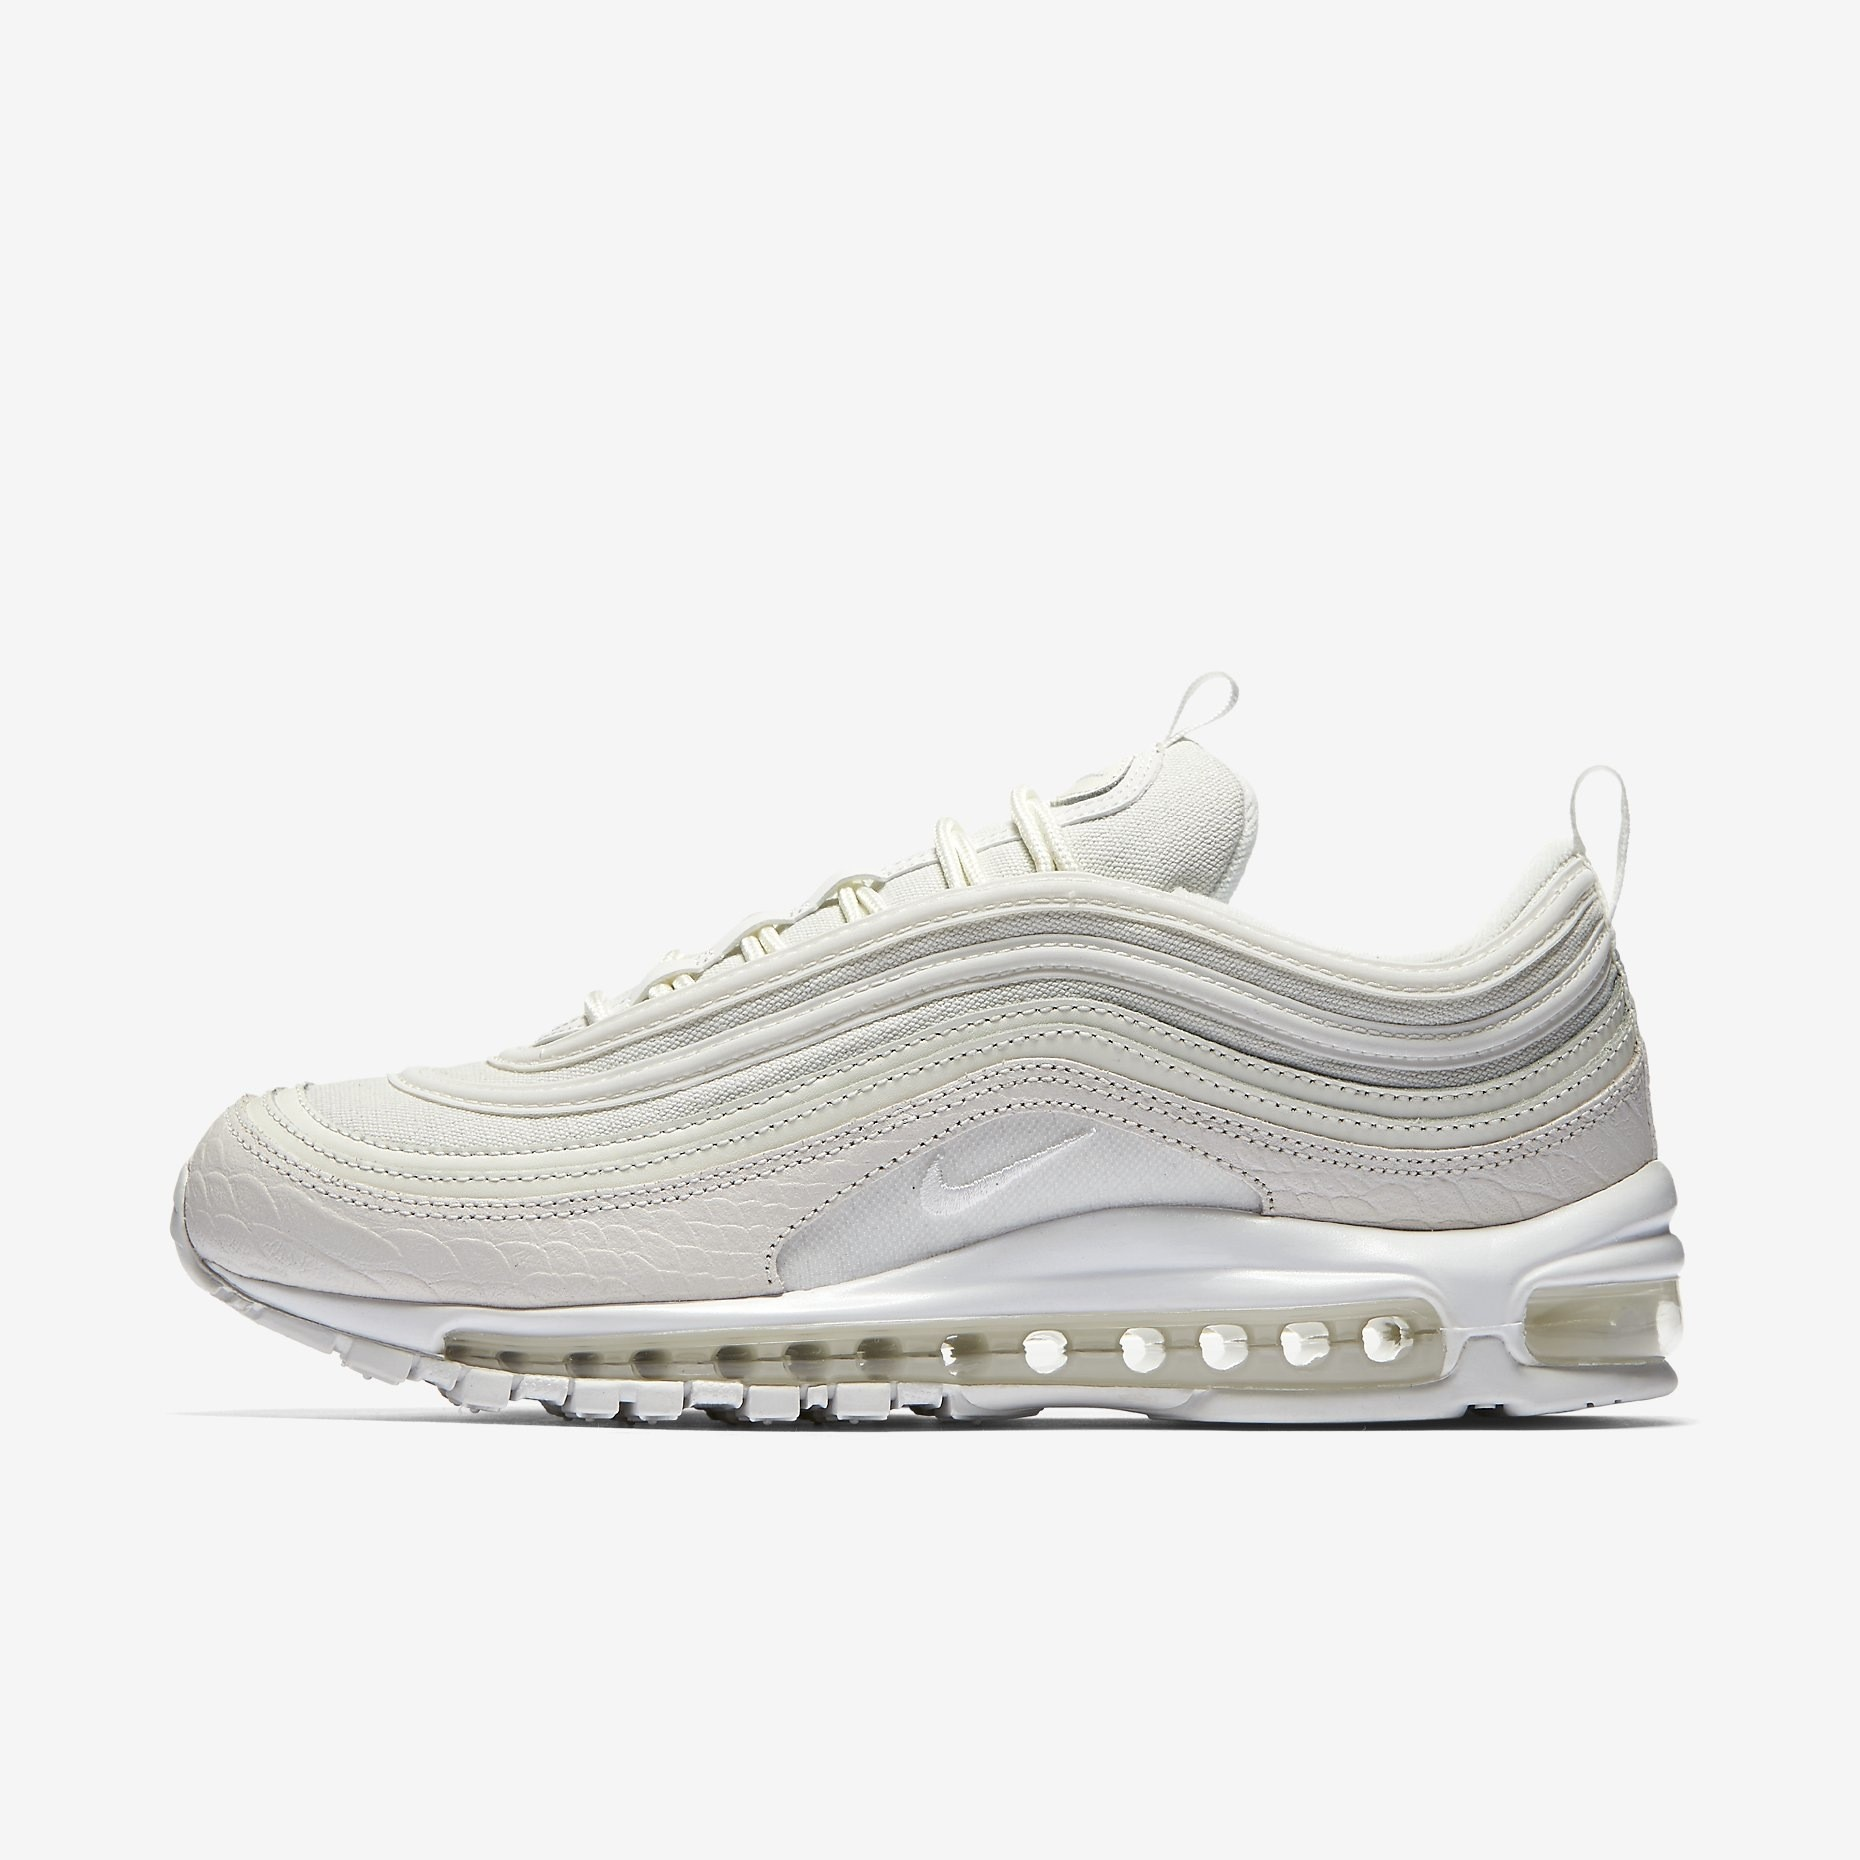 nike air max 97 white snake sneakers. Black Bedroom Furniture Sets. Home Design Ideas